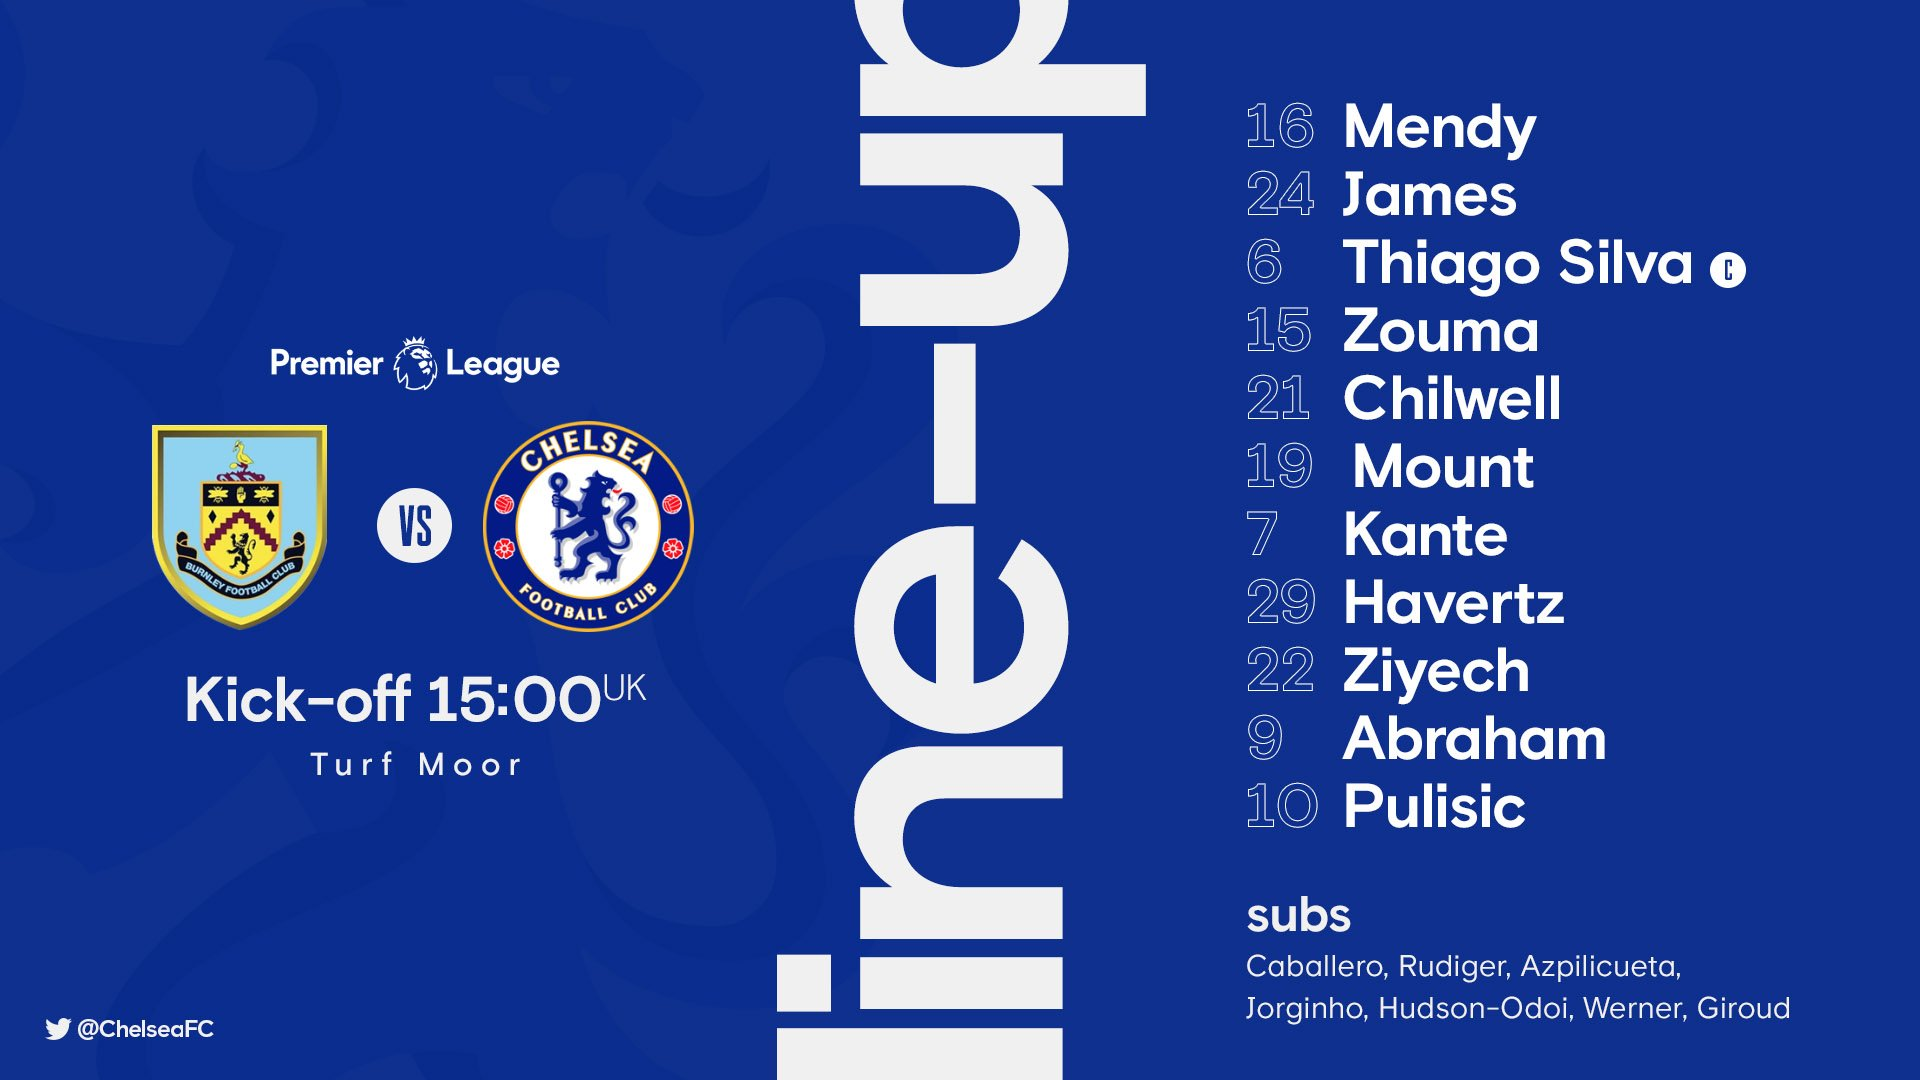 Christian Pulisic replaced by Timo Werner in Chelsea team for Burnley clash after suffering injury in warm-up - Bóng Đá